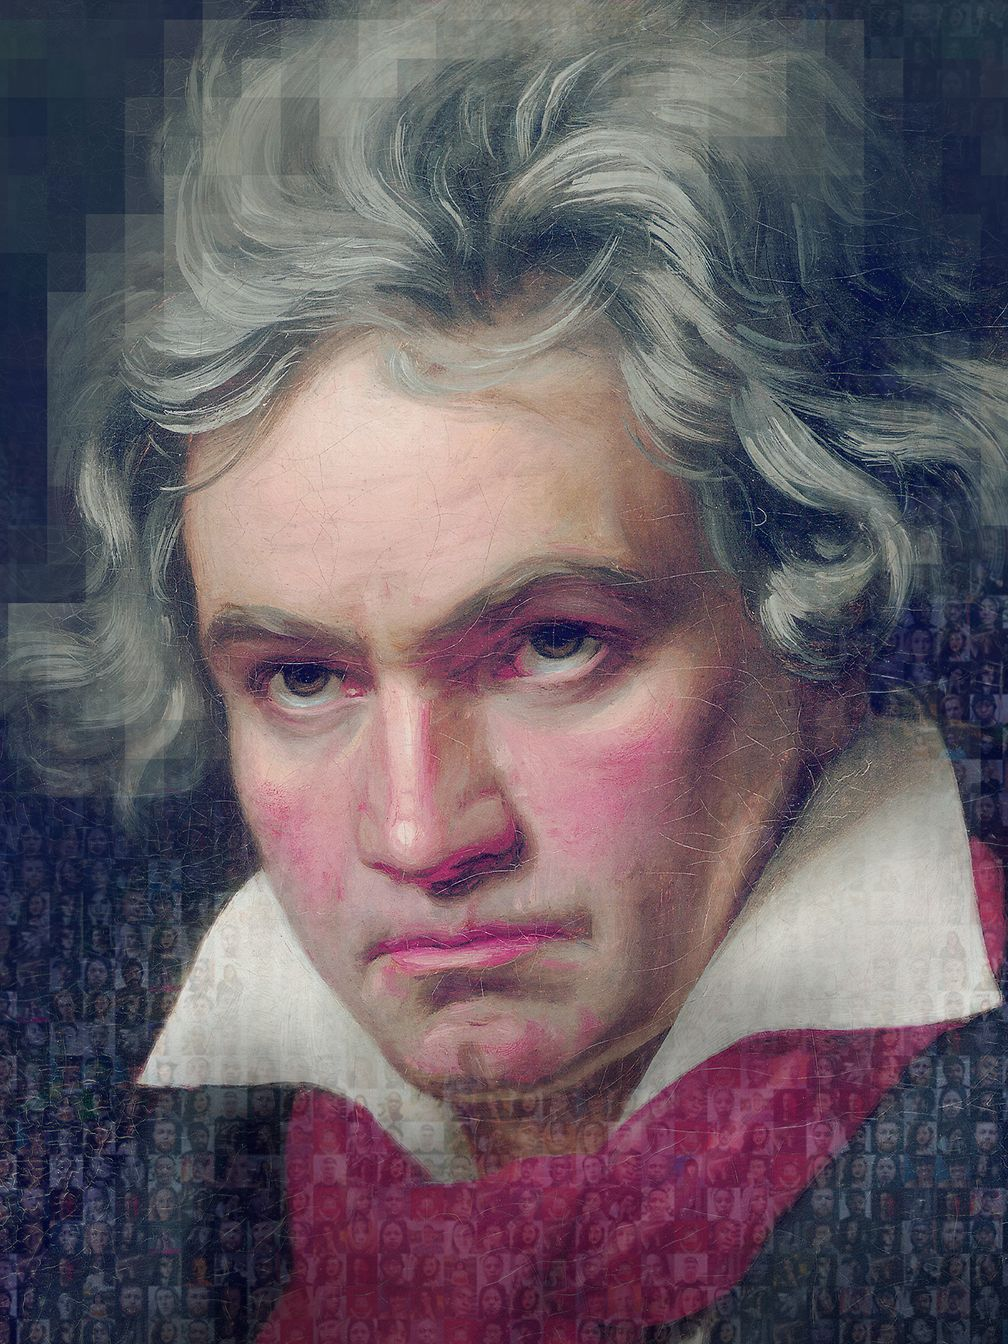 Beethoven portrait composed of many small pictures.